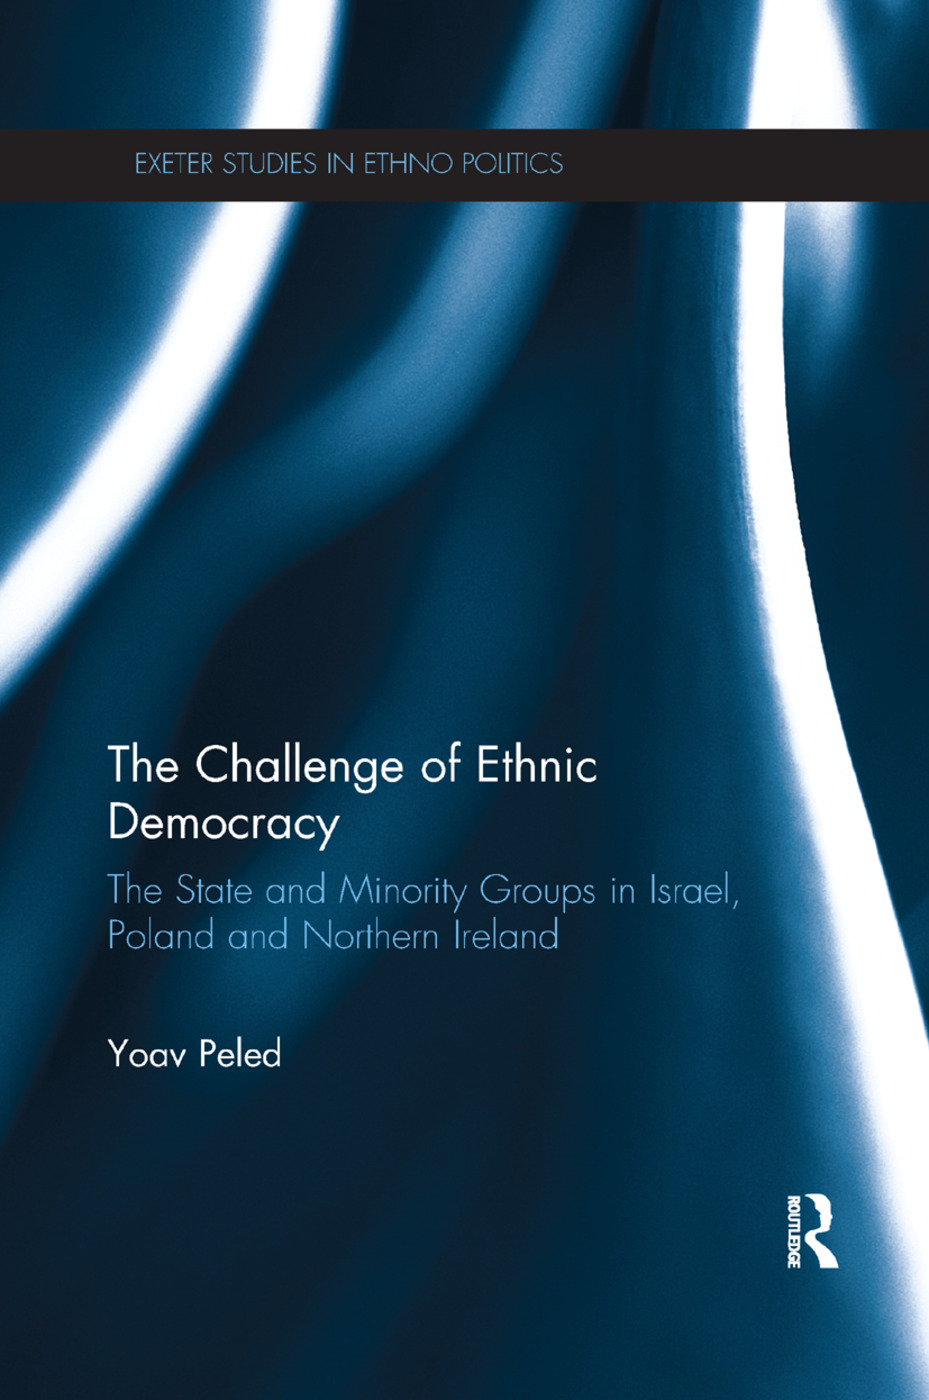 The Challenge of Ethnic Democracy